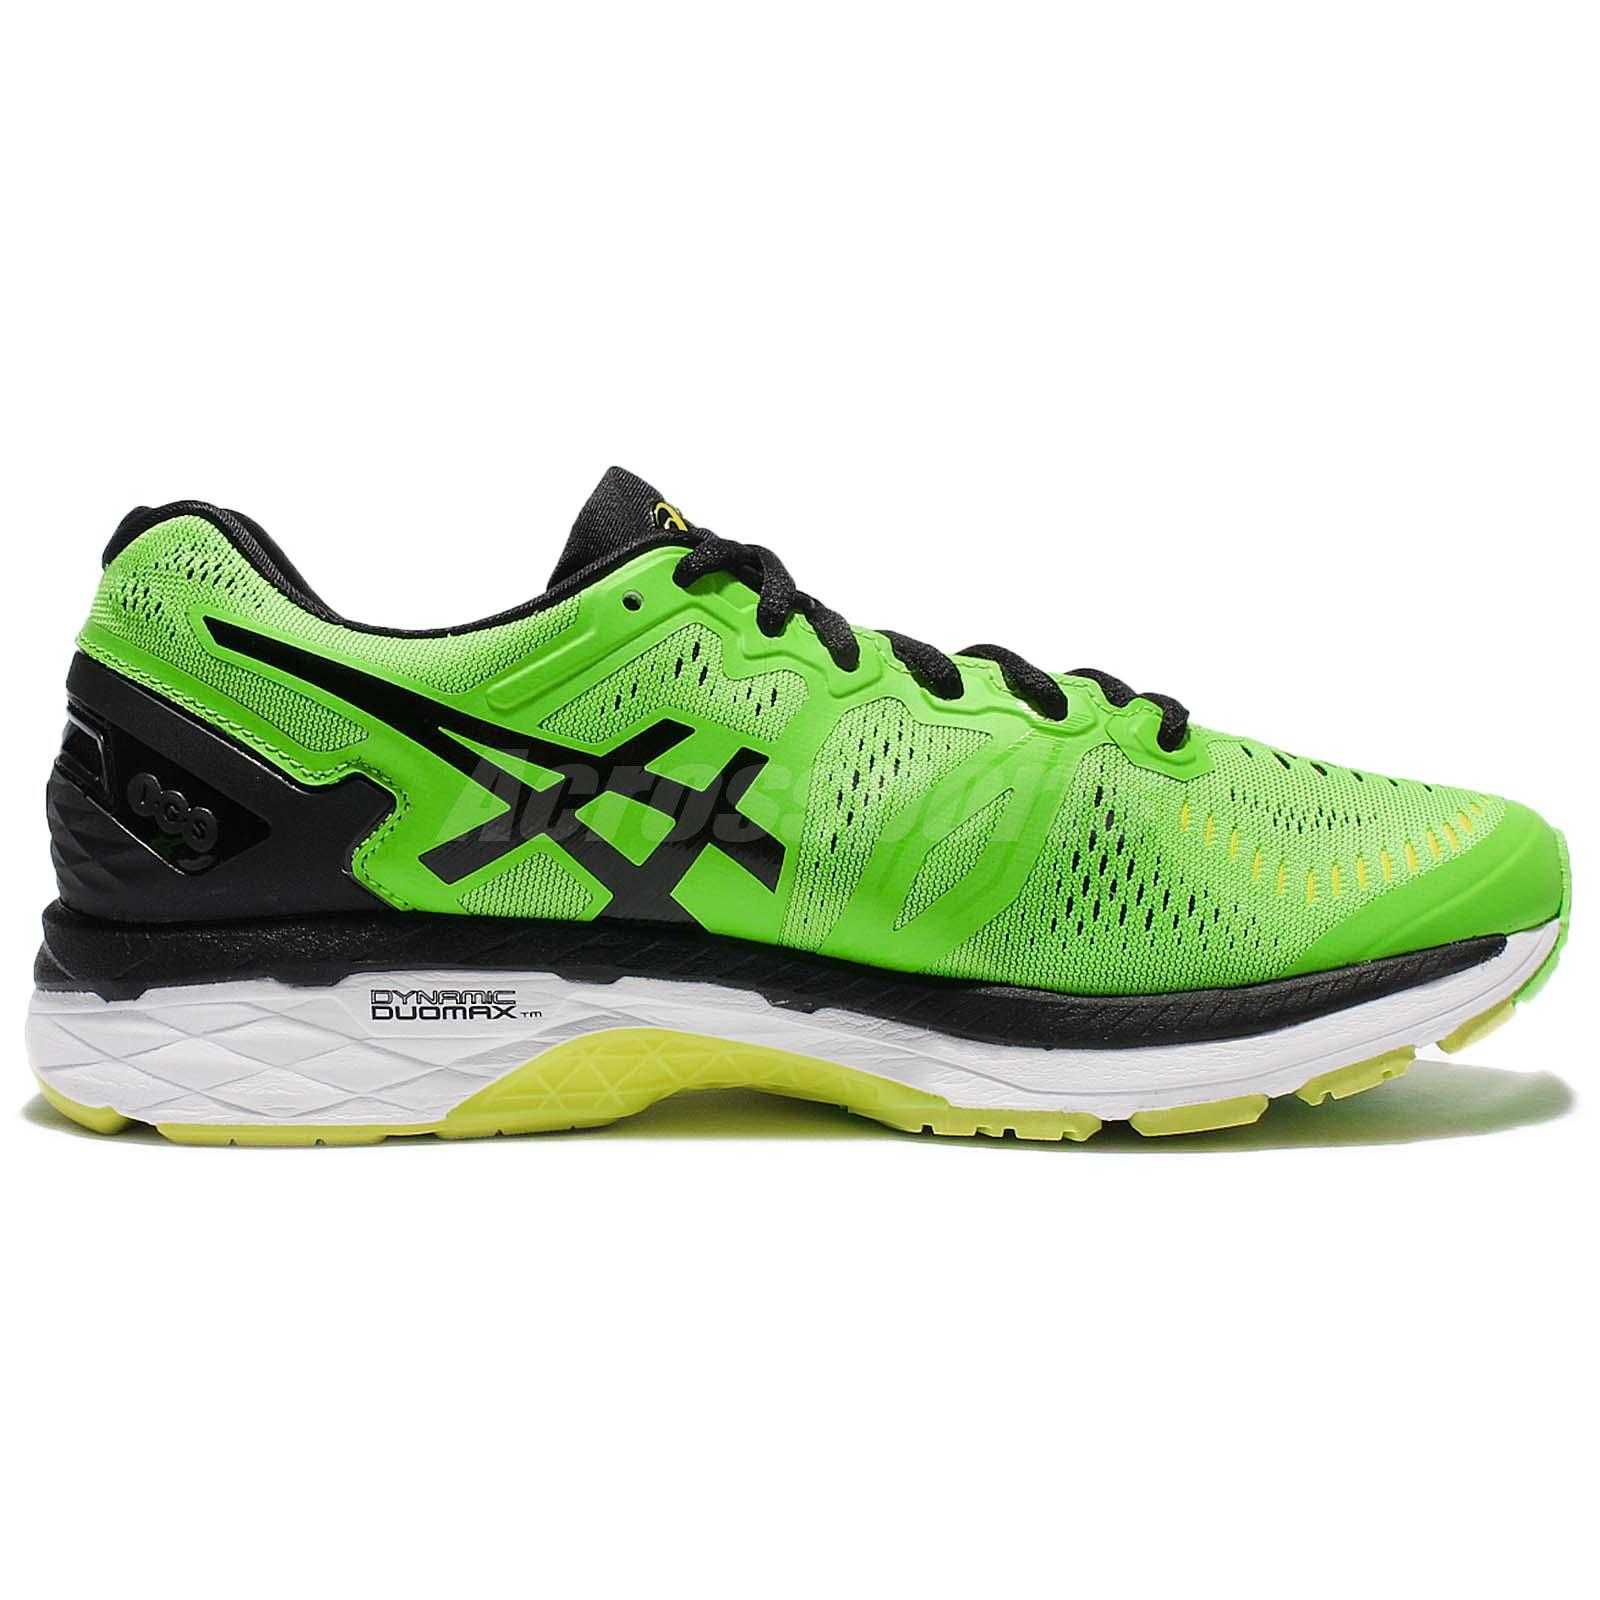 competitive price 3bbdc d7f6b Details about Asics Gel-Kayano 23 Green Black Men Running Shoes Sneakers  Flytefoam T646N-8590